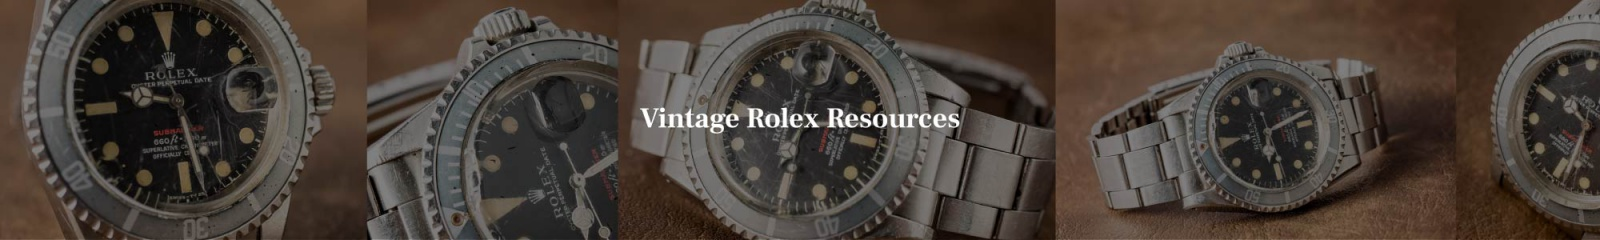 Vintage Rolex resources